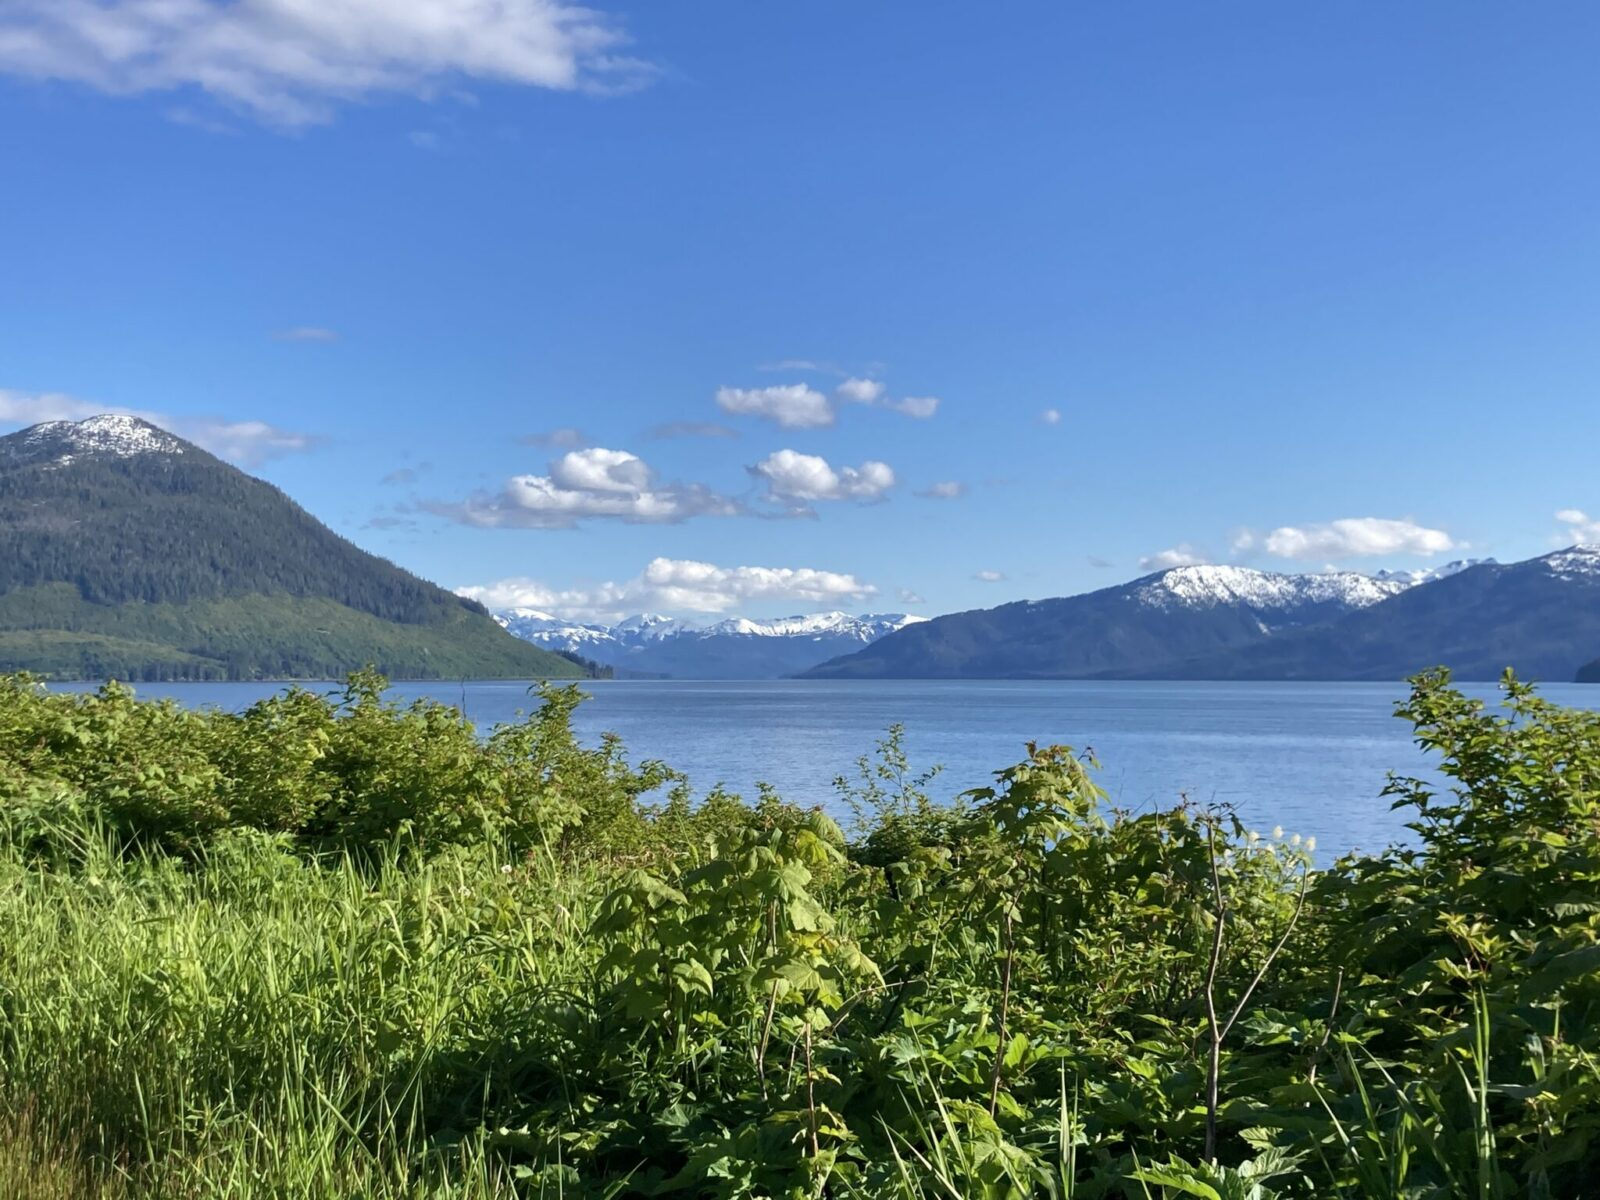 Green undergrowth in the foreground and fjord in the background. There is still some snow on the forested mountains on a sunny day